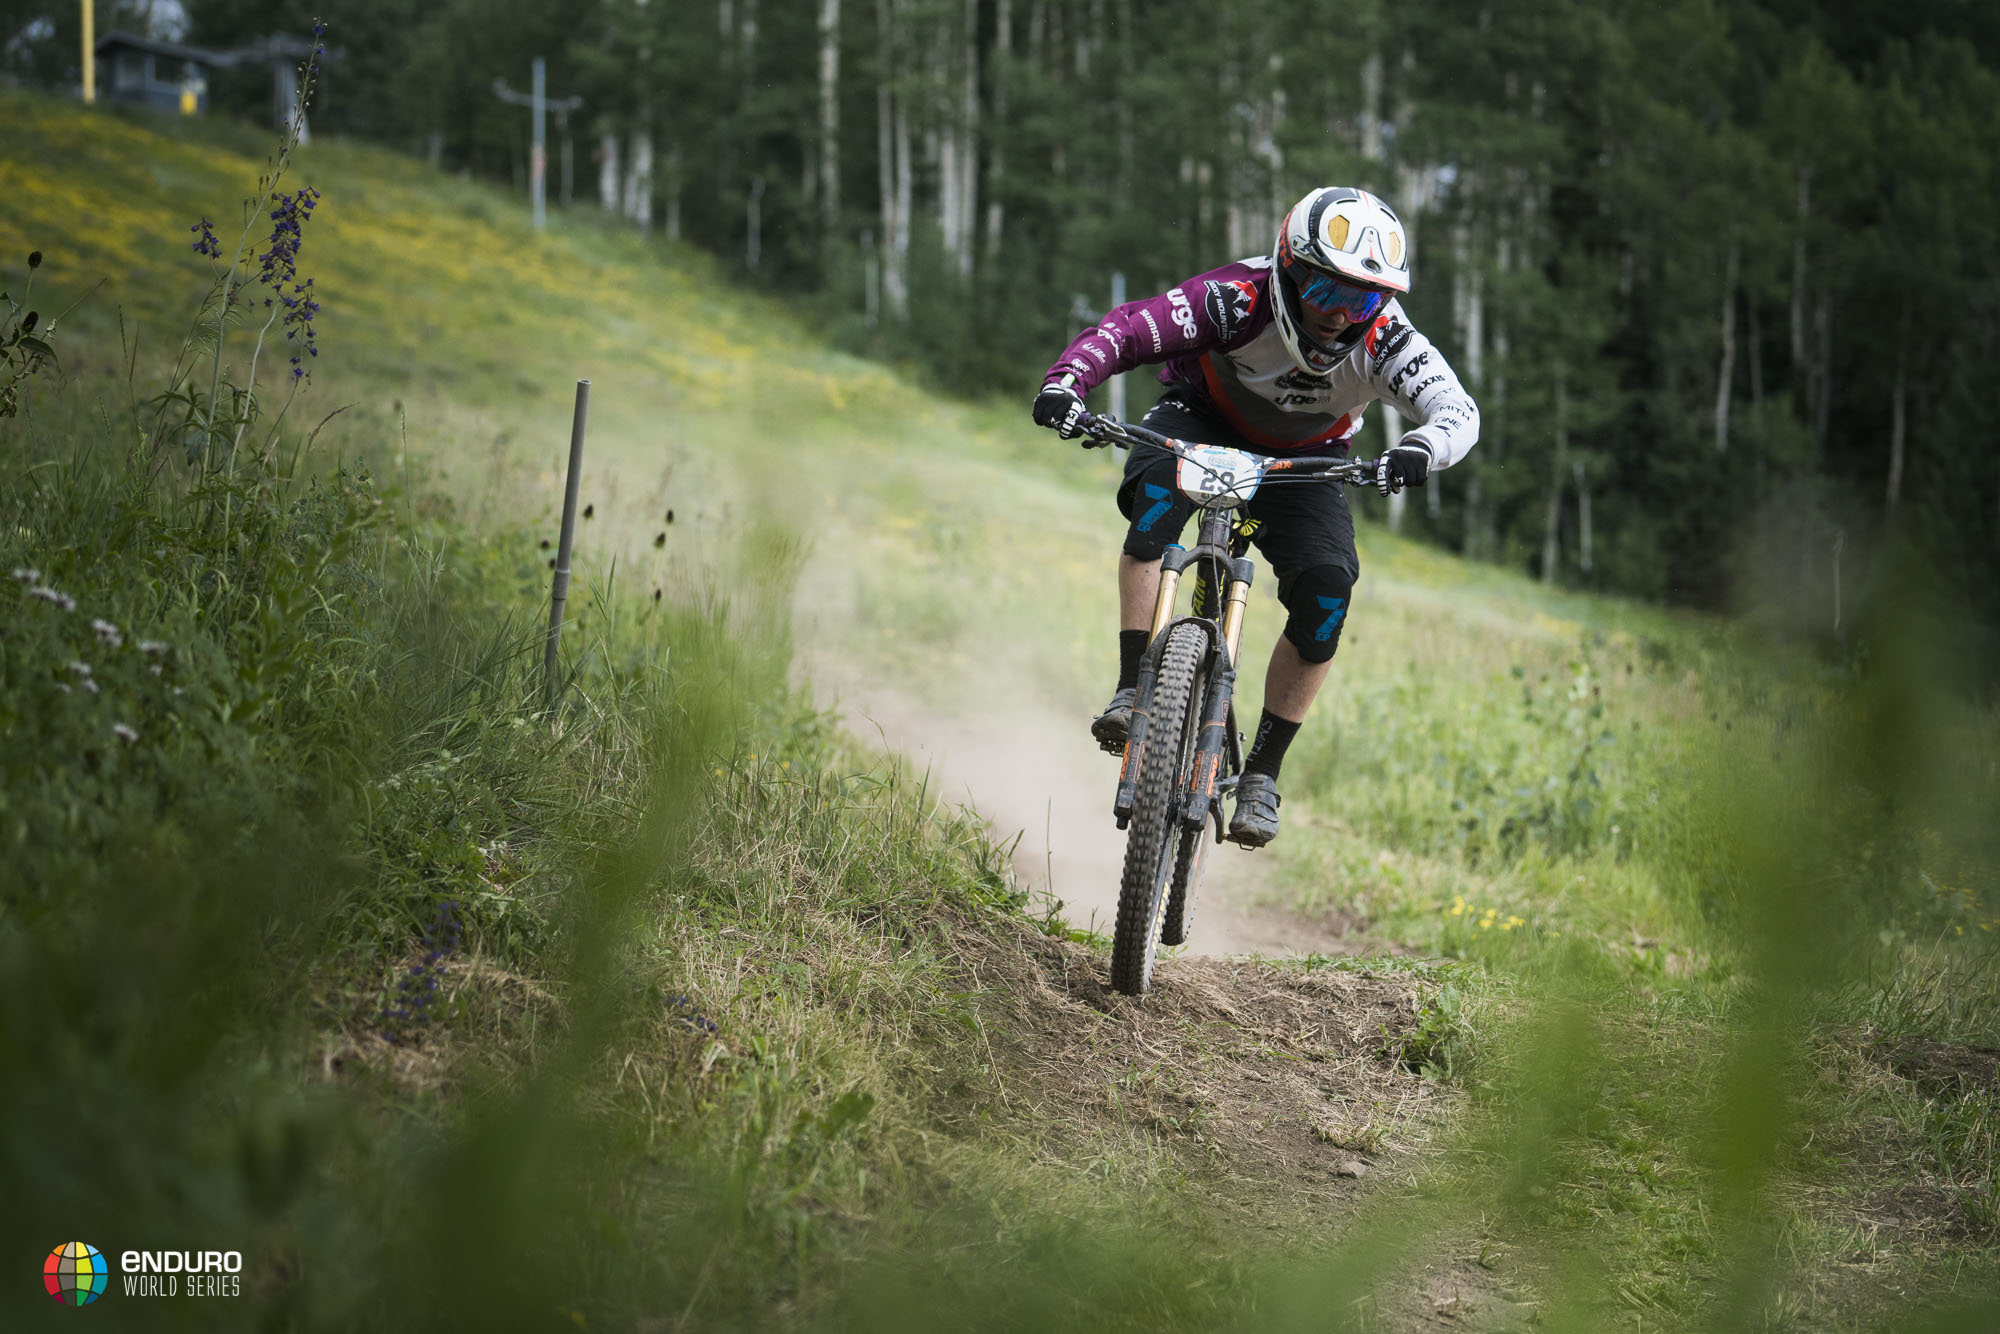 Jesse Melamed finishes in his career best 8th place, providing some good momentum for his own home round in Whistler